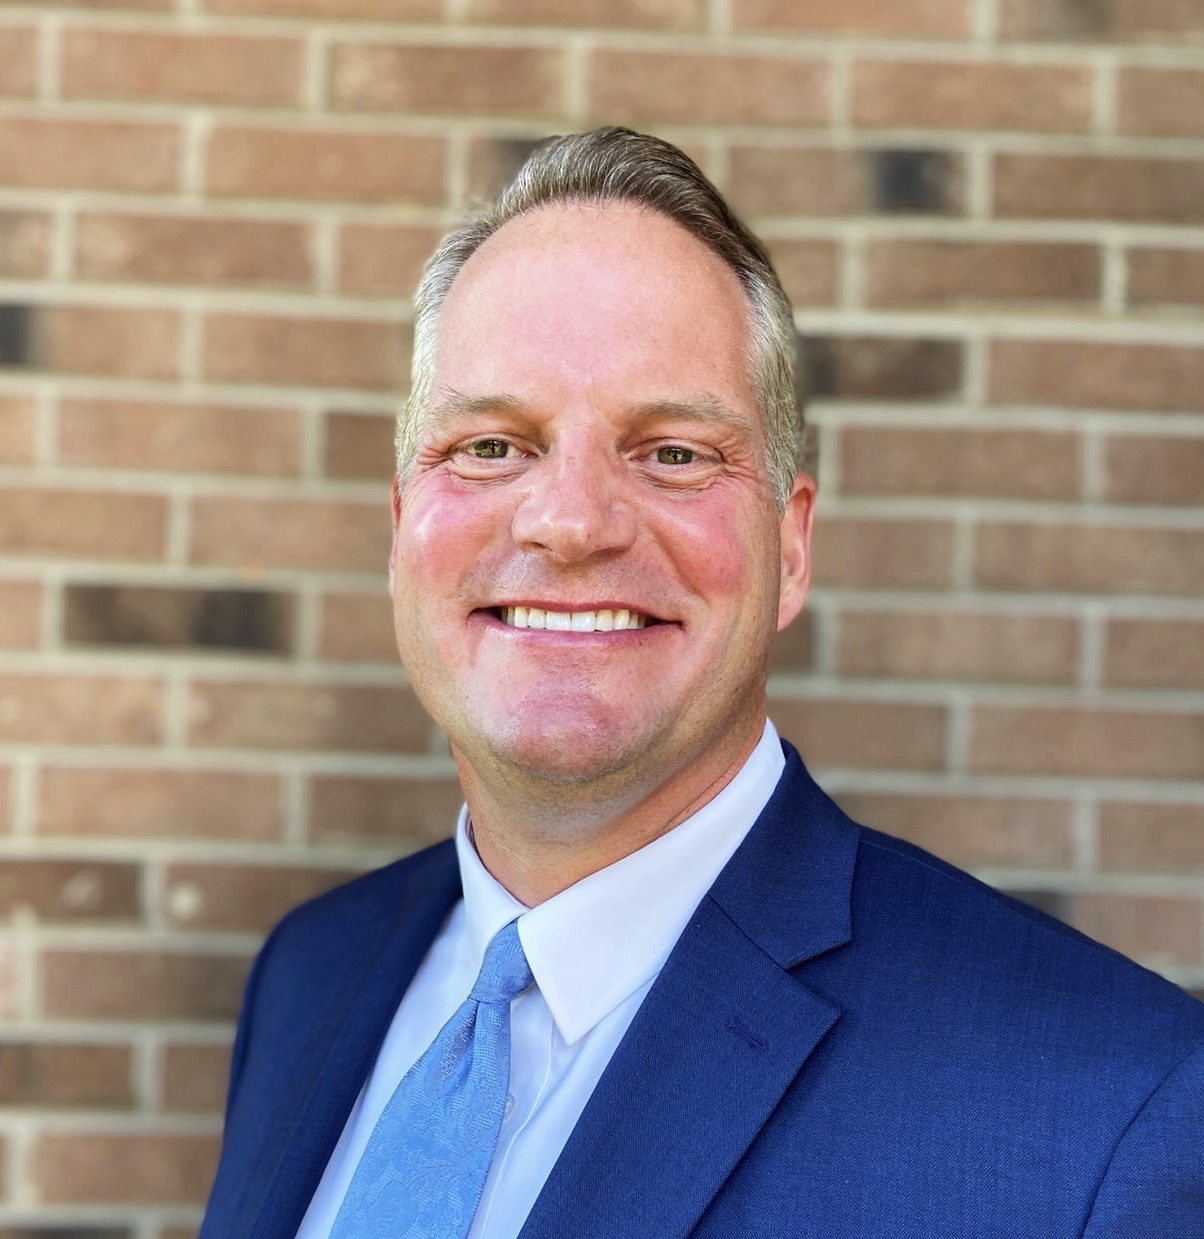 Coldwell Banker Howard Perry and Walston Names Matt Ernst as Recruiting Director of Its North Raleigh Real Estate Sales Office